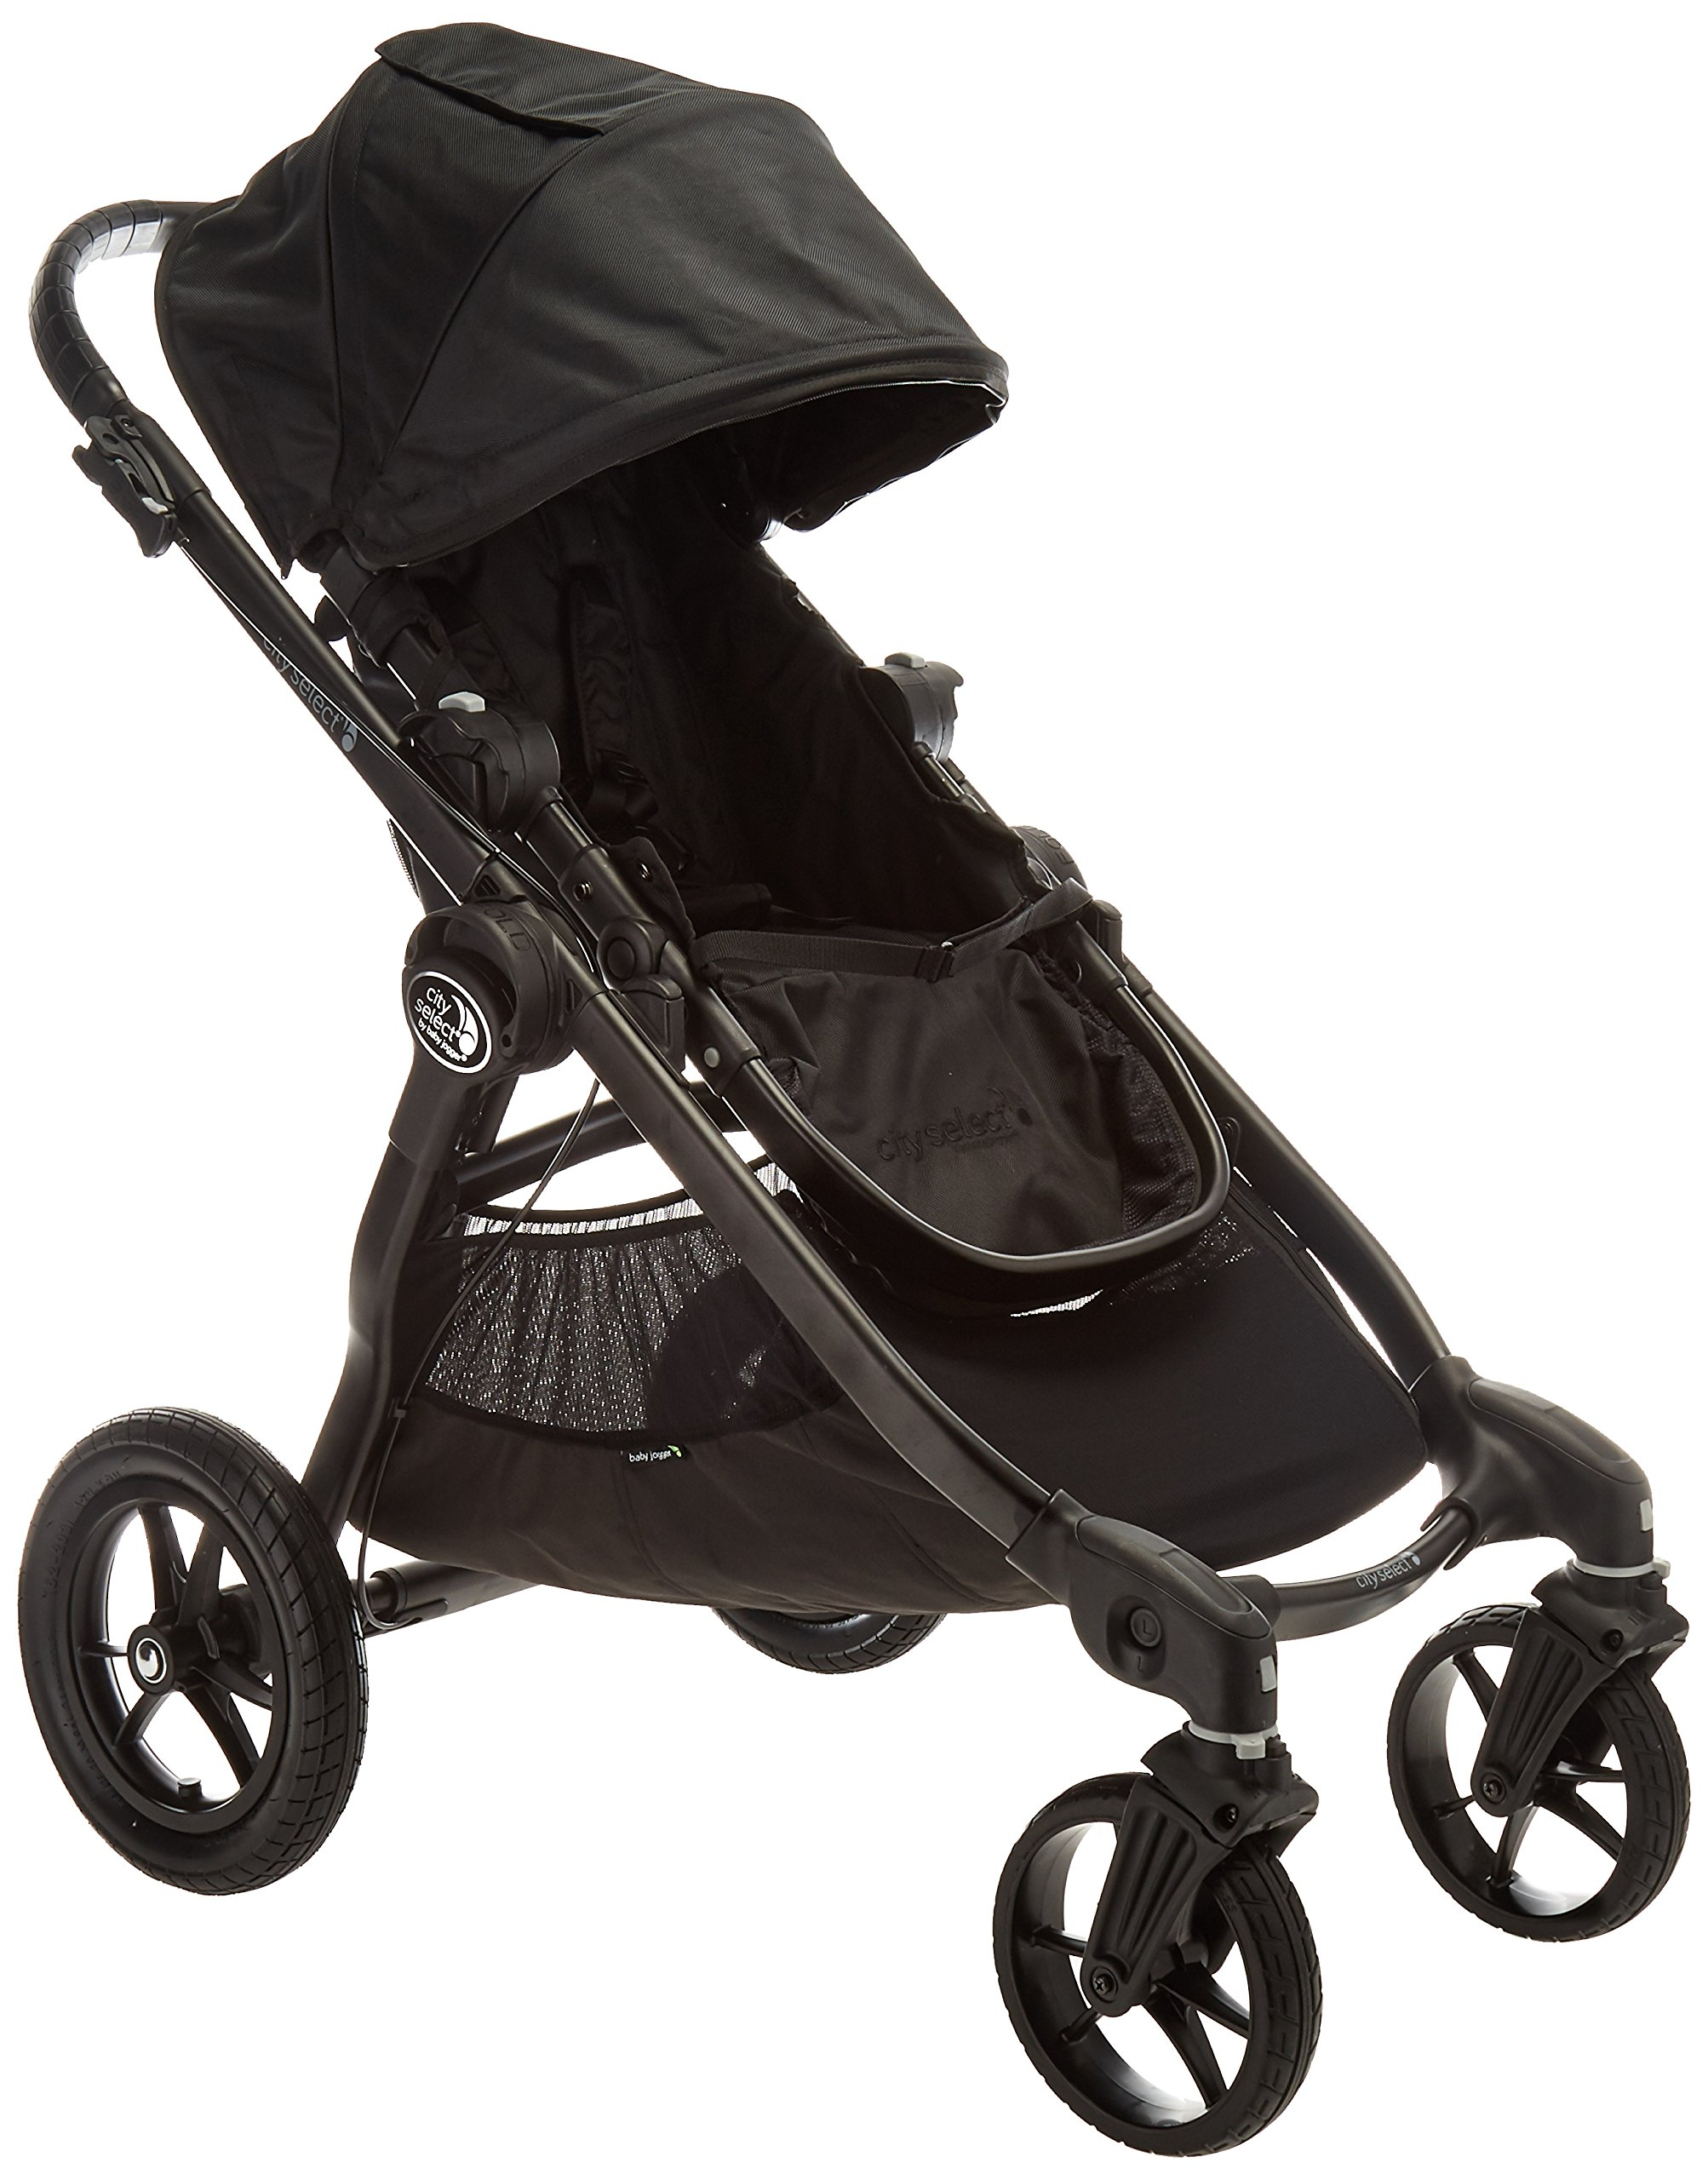 Baby Jogger 2016 City Select Single Stroller - Black